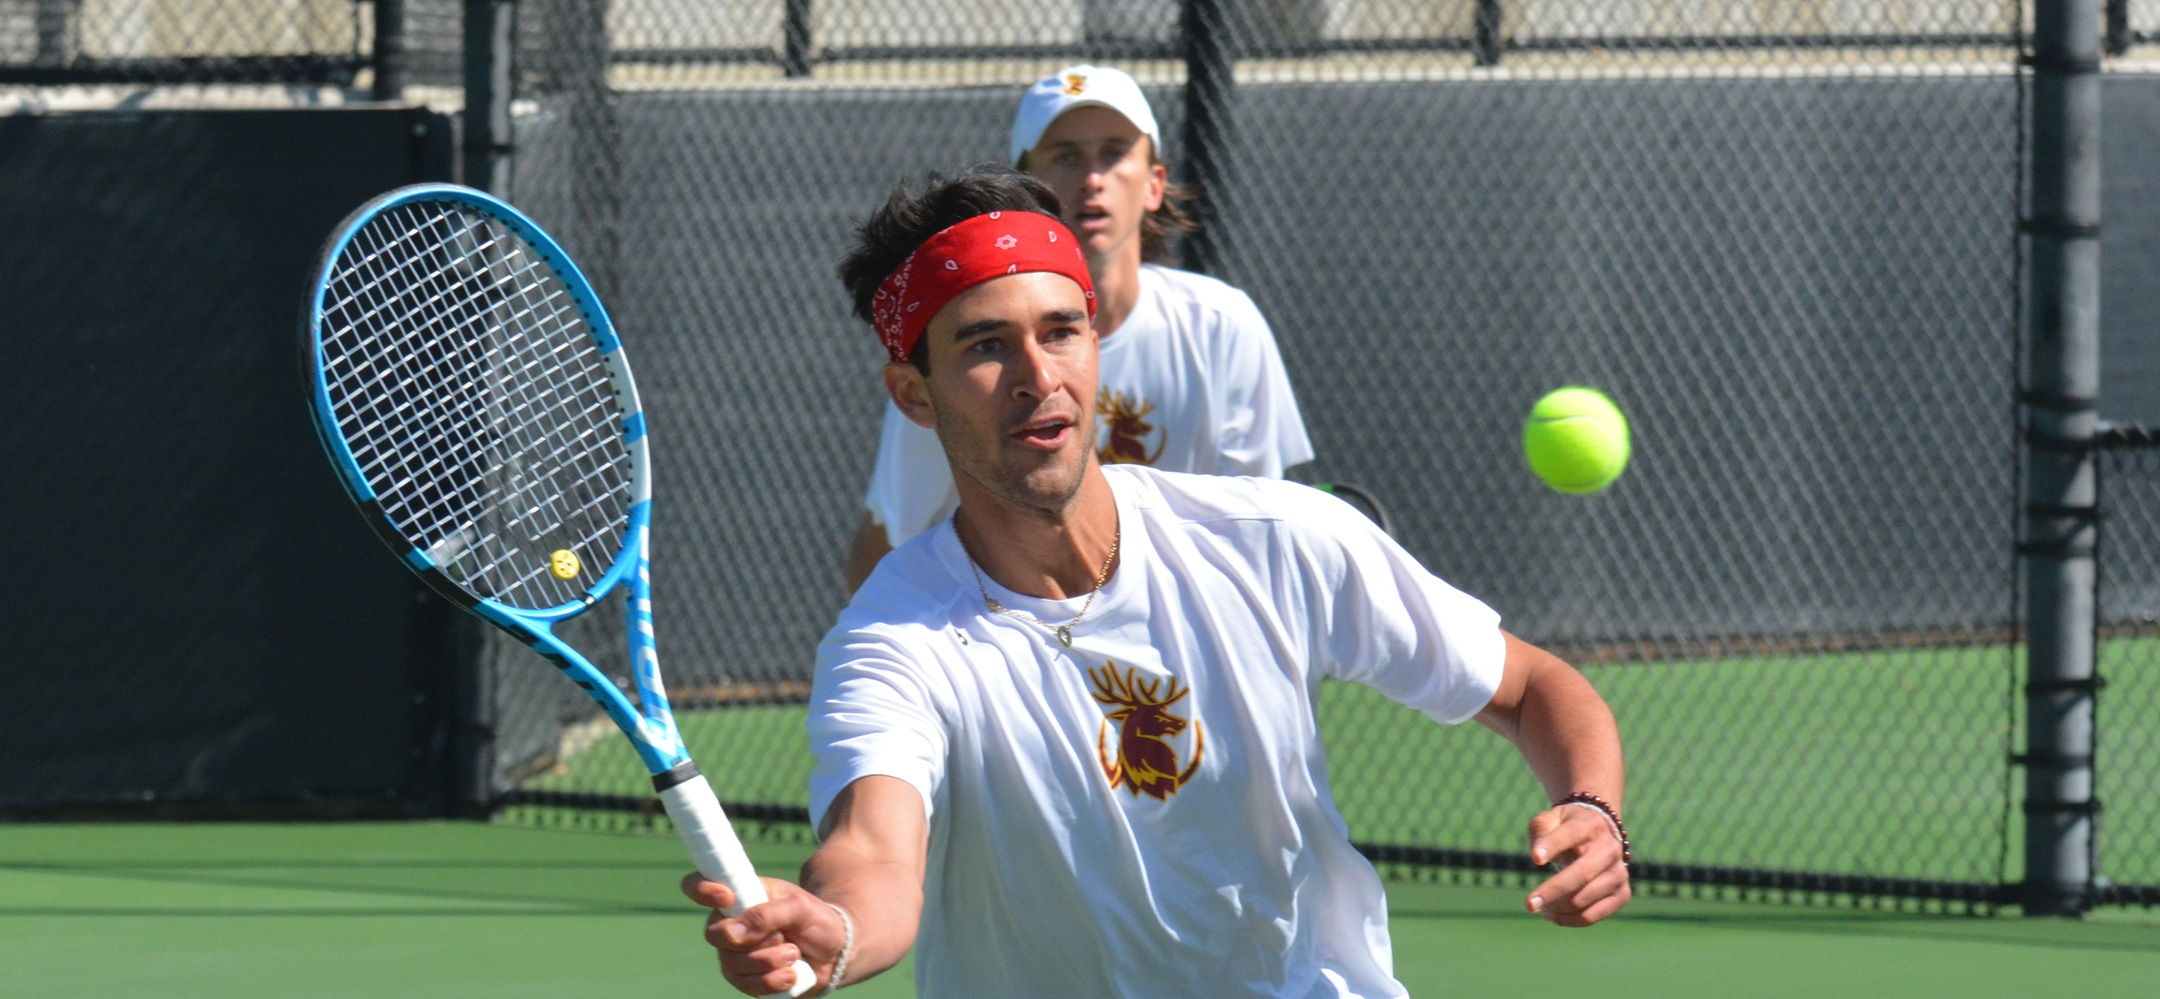 Juniors Jake Berber (CMC) and Jake Williams (HMC) clinched the doubles point with their 7-5 win at No. 3 doubles against Division II Western New Mexico on Tuesday.